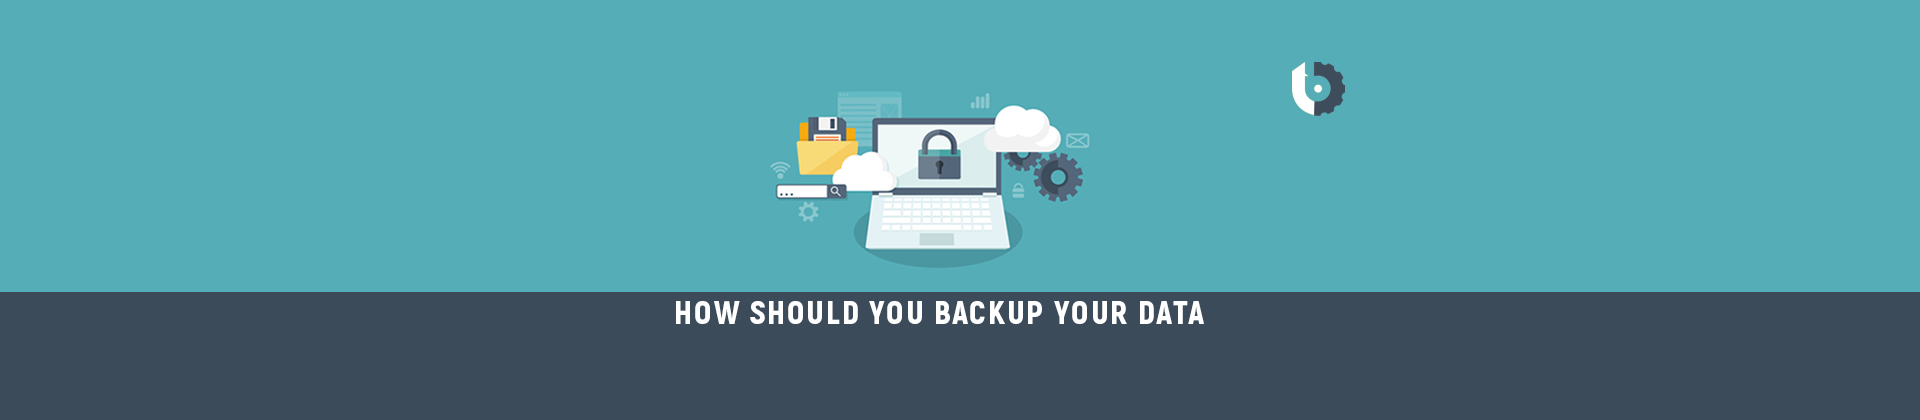 How Should you backup your data?